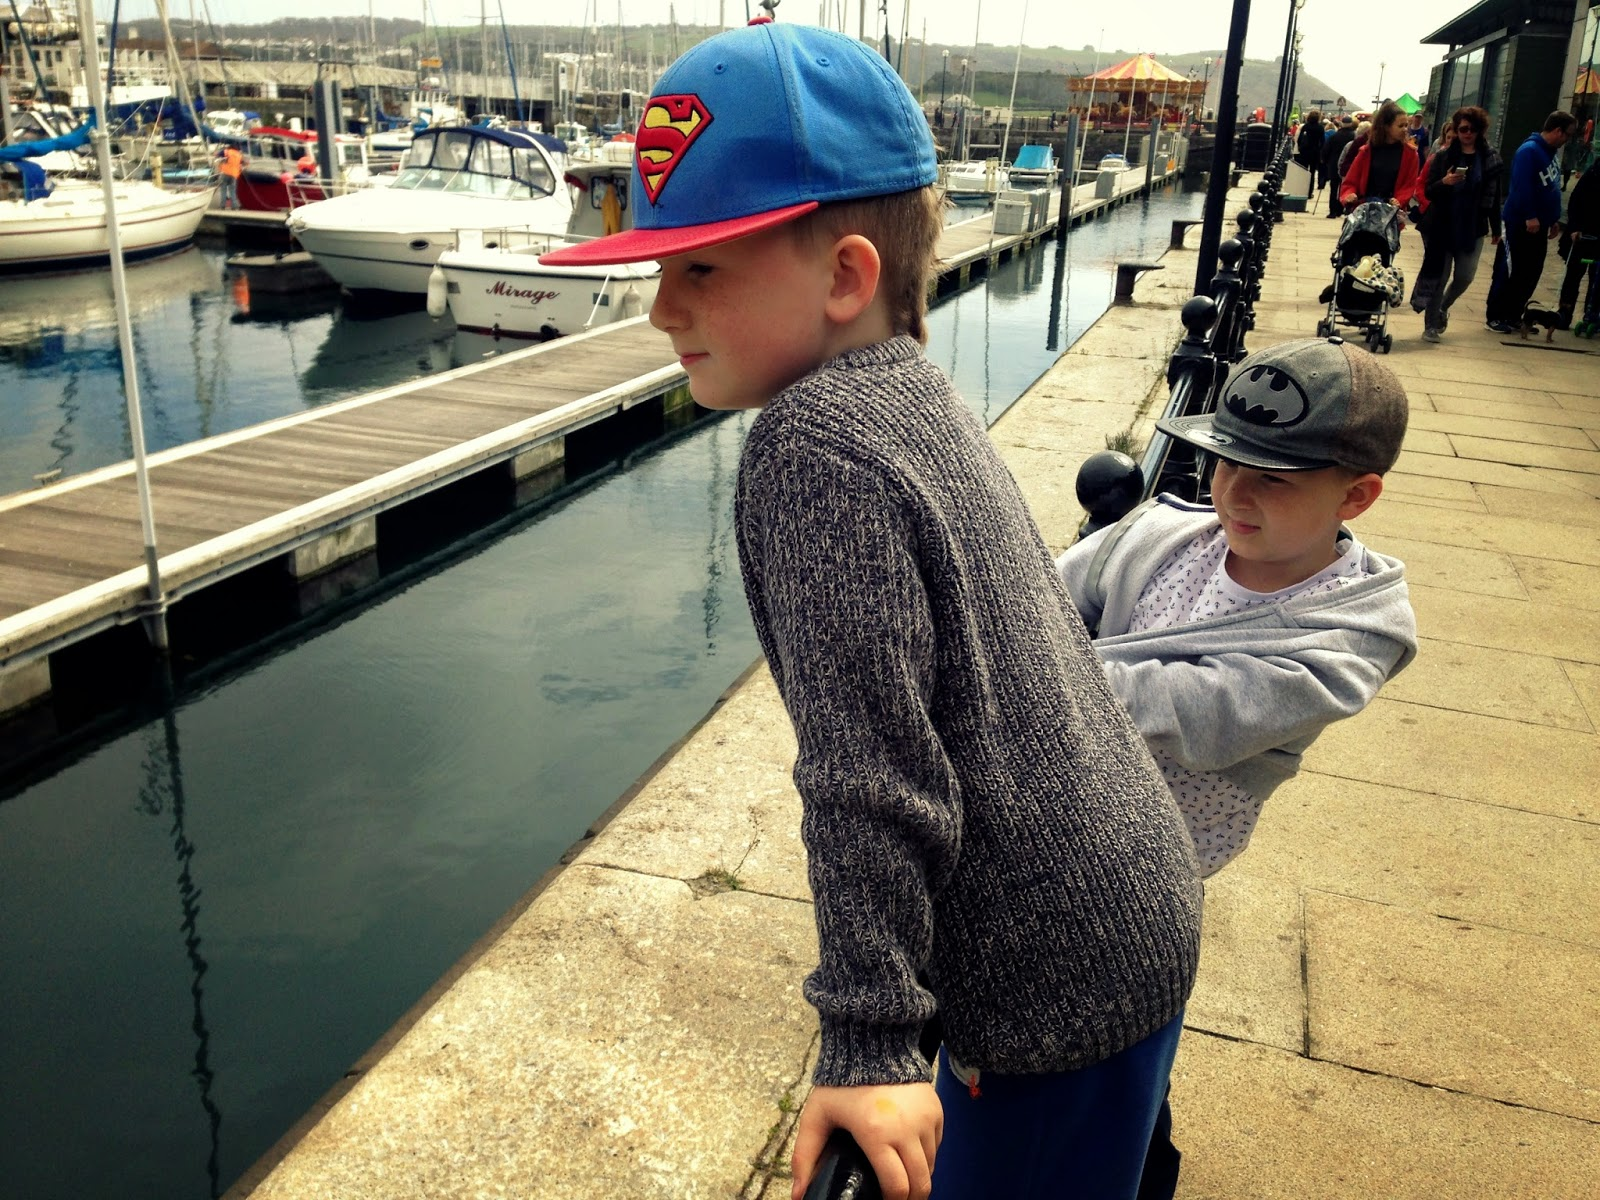 plymouth, barbican, hoe, waterfront, blogger, blog, parent, single, seaside, fish, portrait,